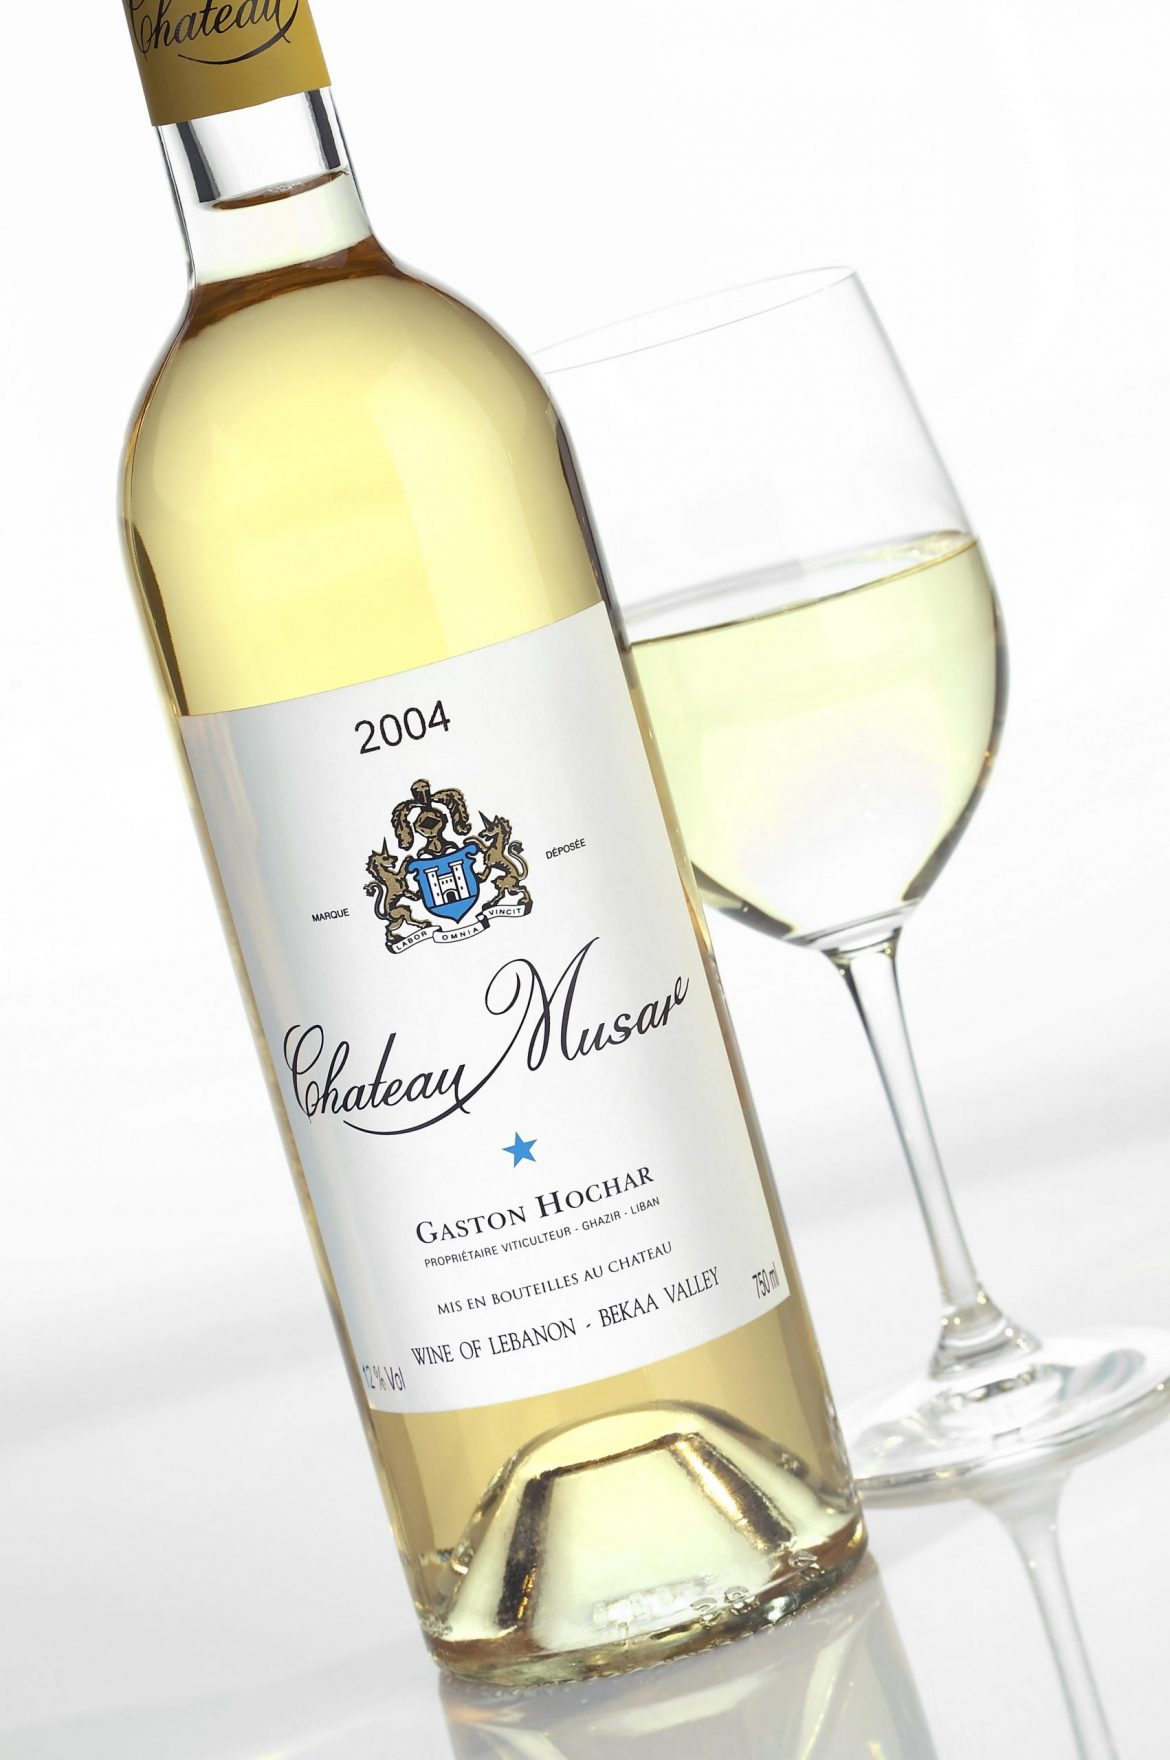 ChateauMusar-White-2004-scaled.jpg